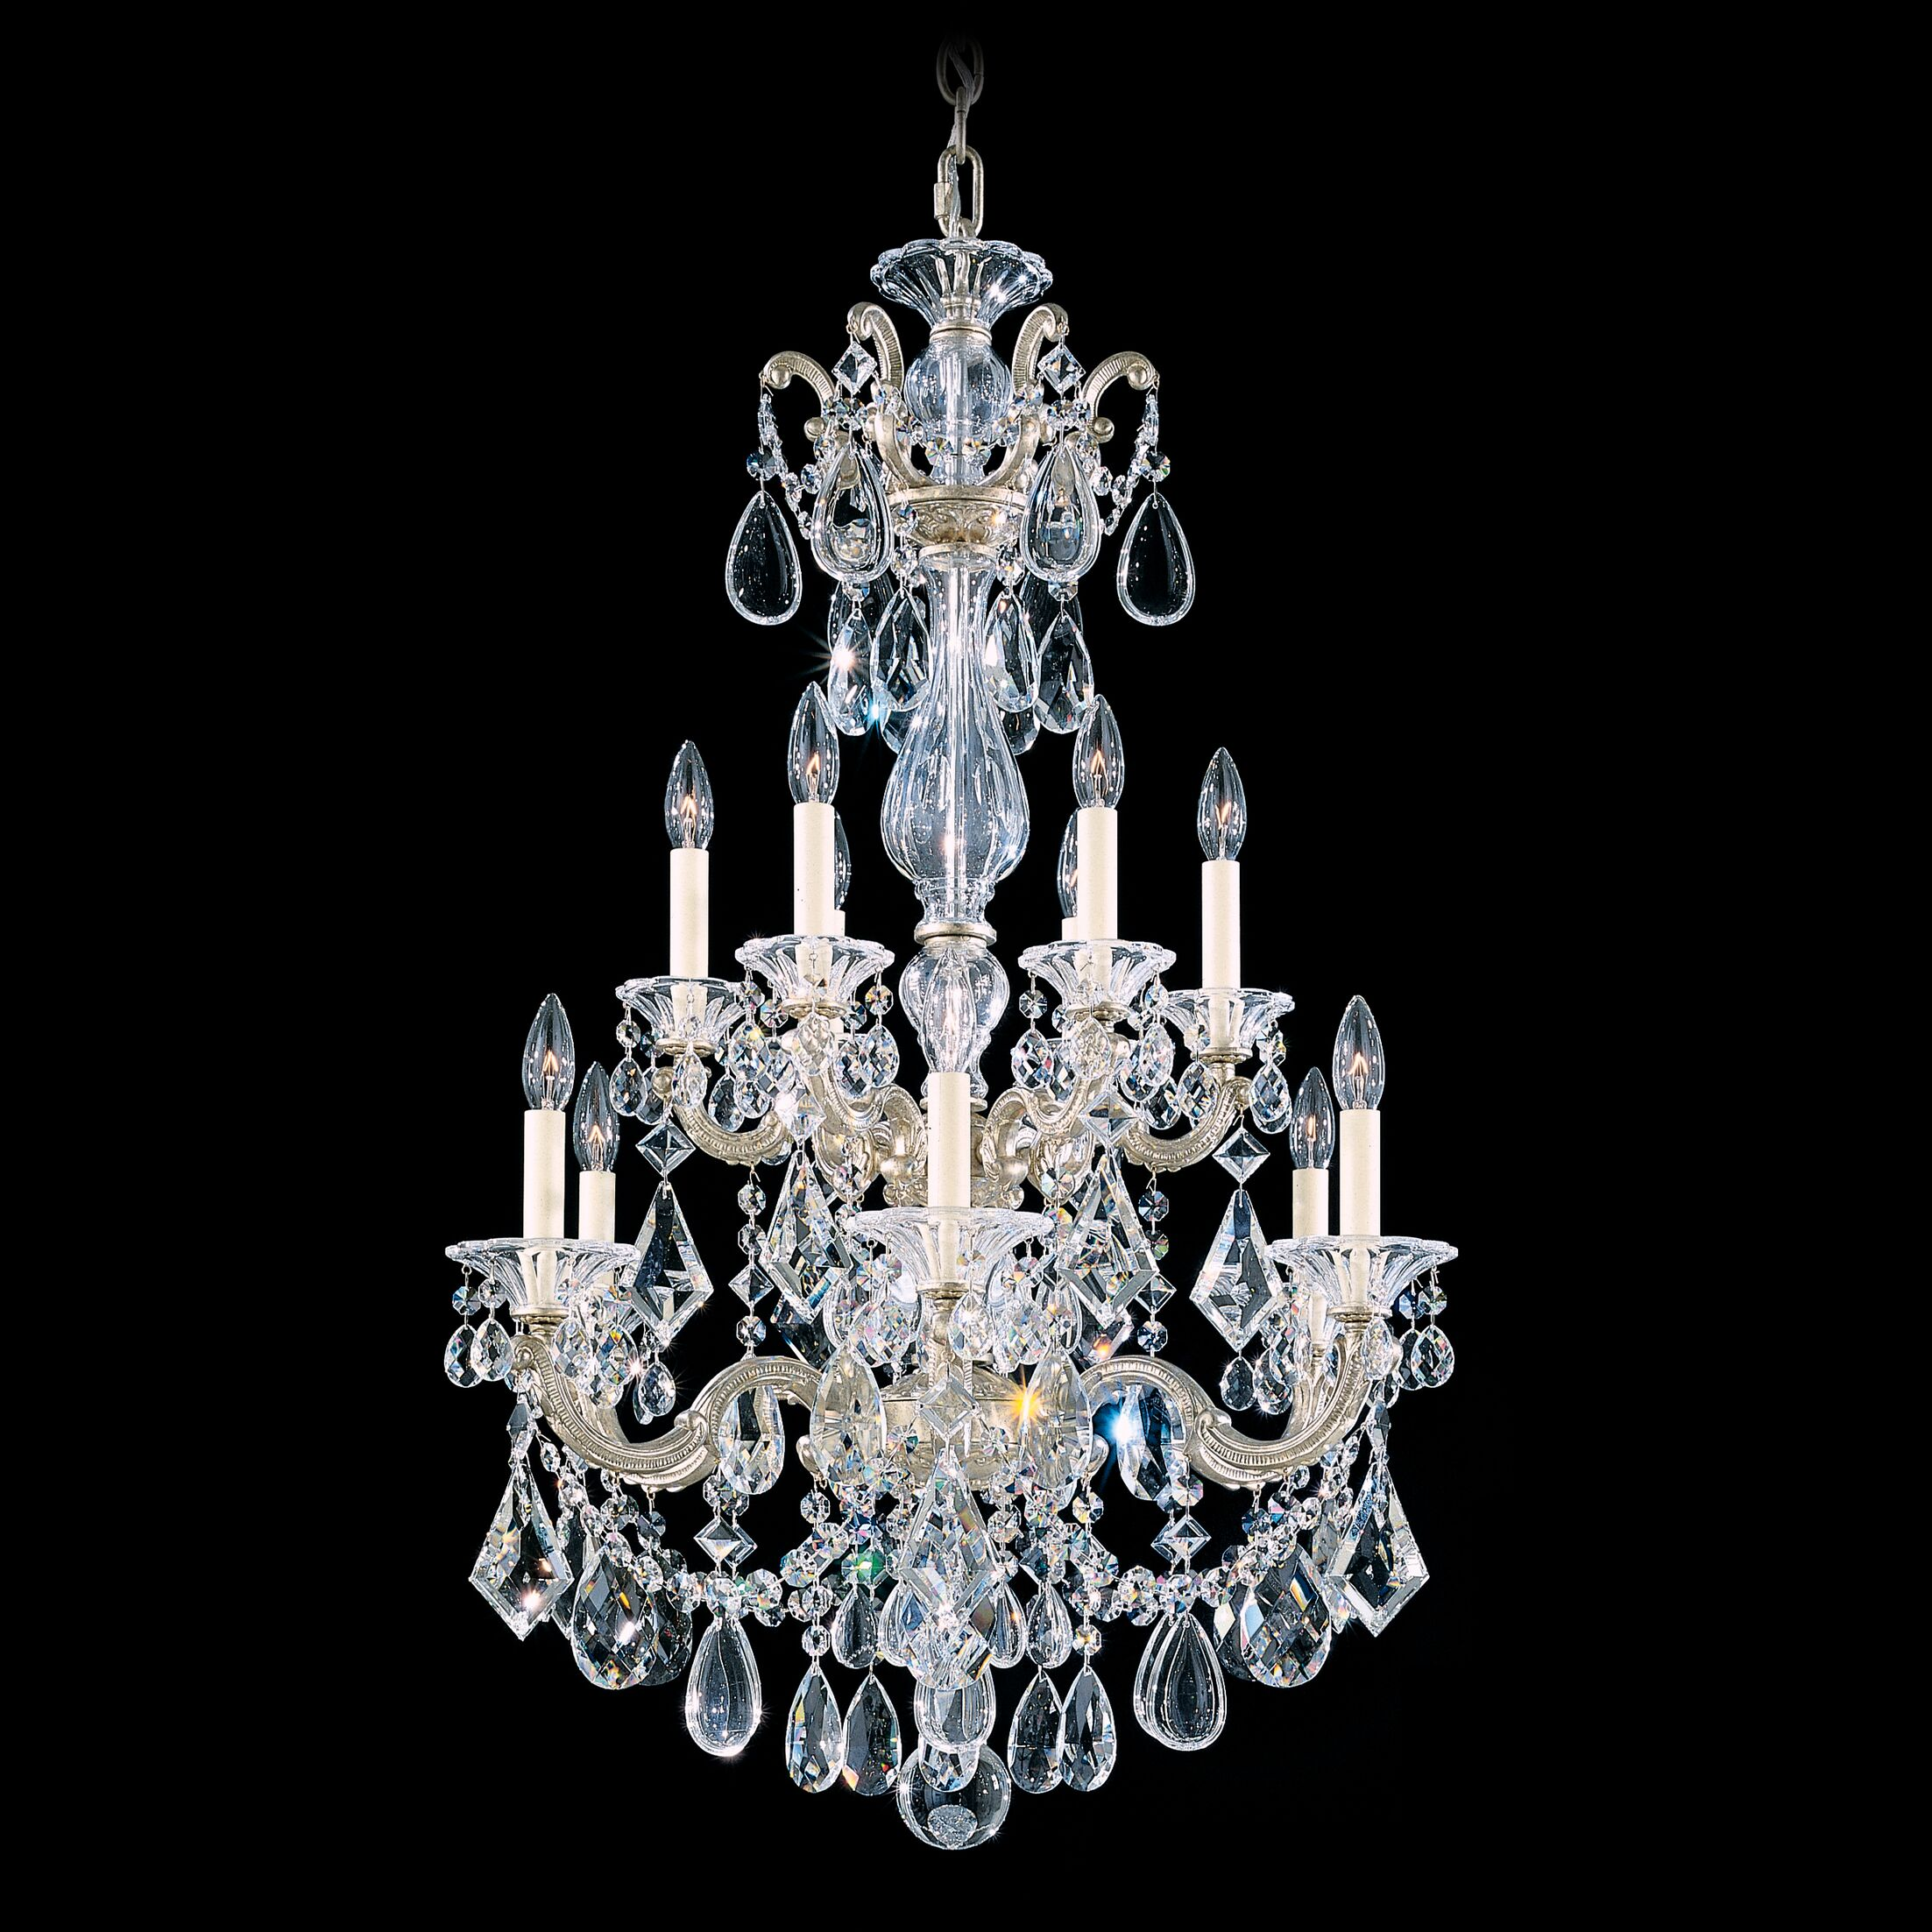 La Scala 12-Light Chandelier Finish / Crystal Color: Antique Silver / Strass Clear